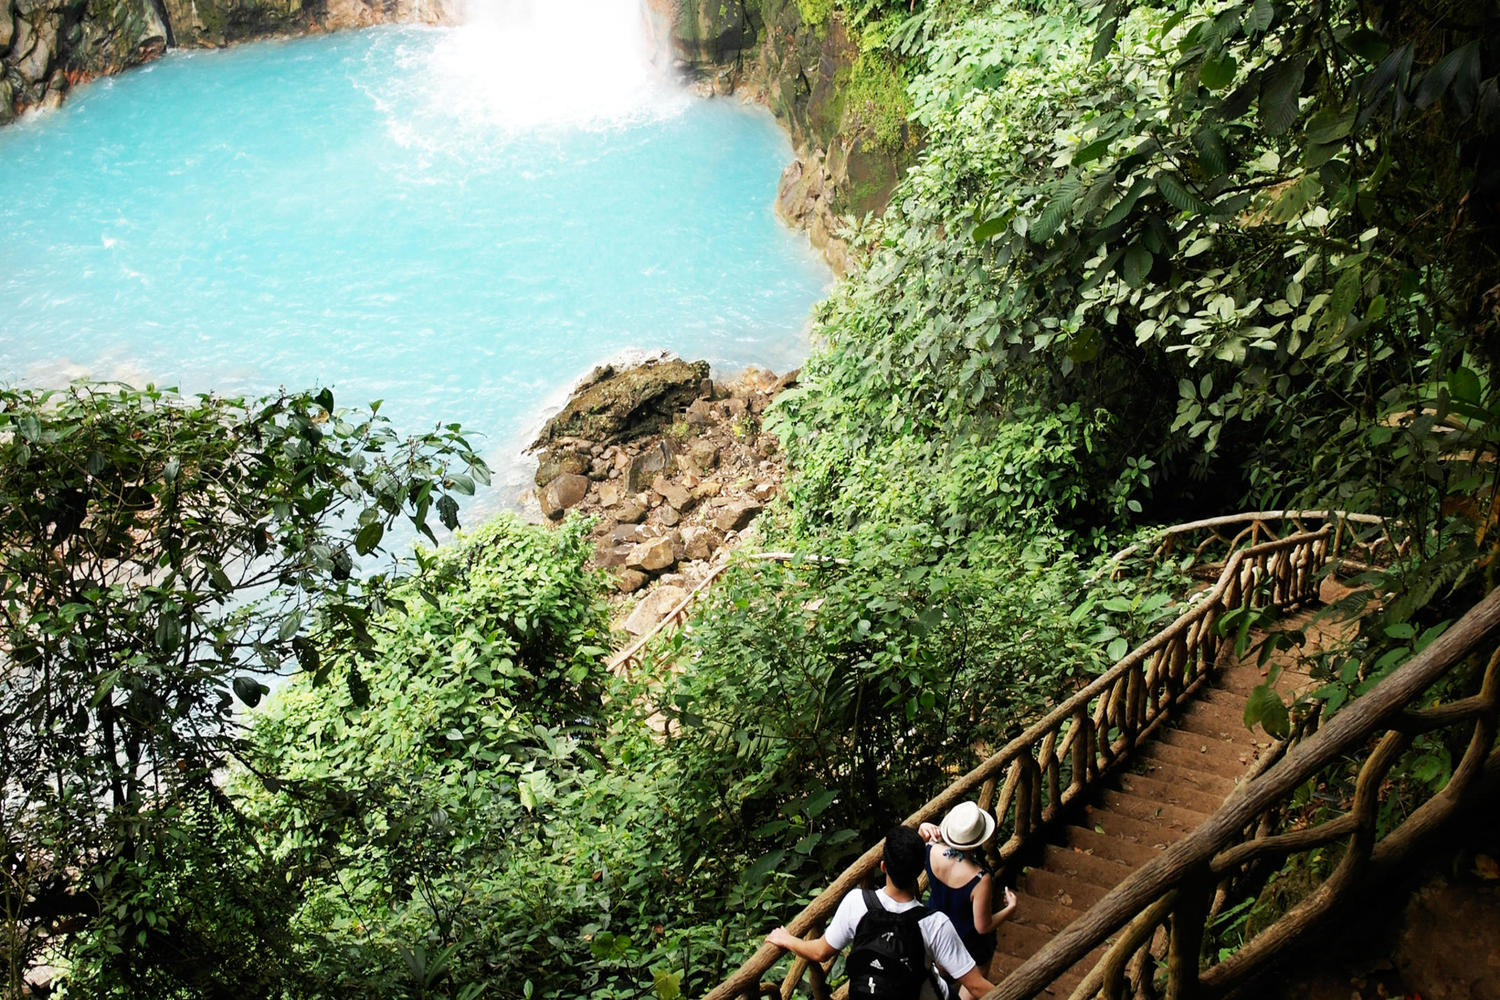 Walking down to Rio Celeste waterfall in Volcano national park, Tenorio